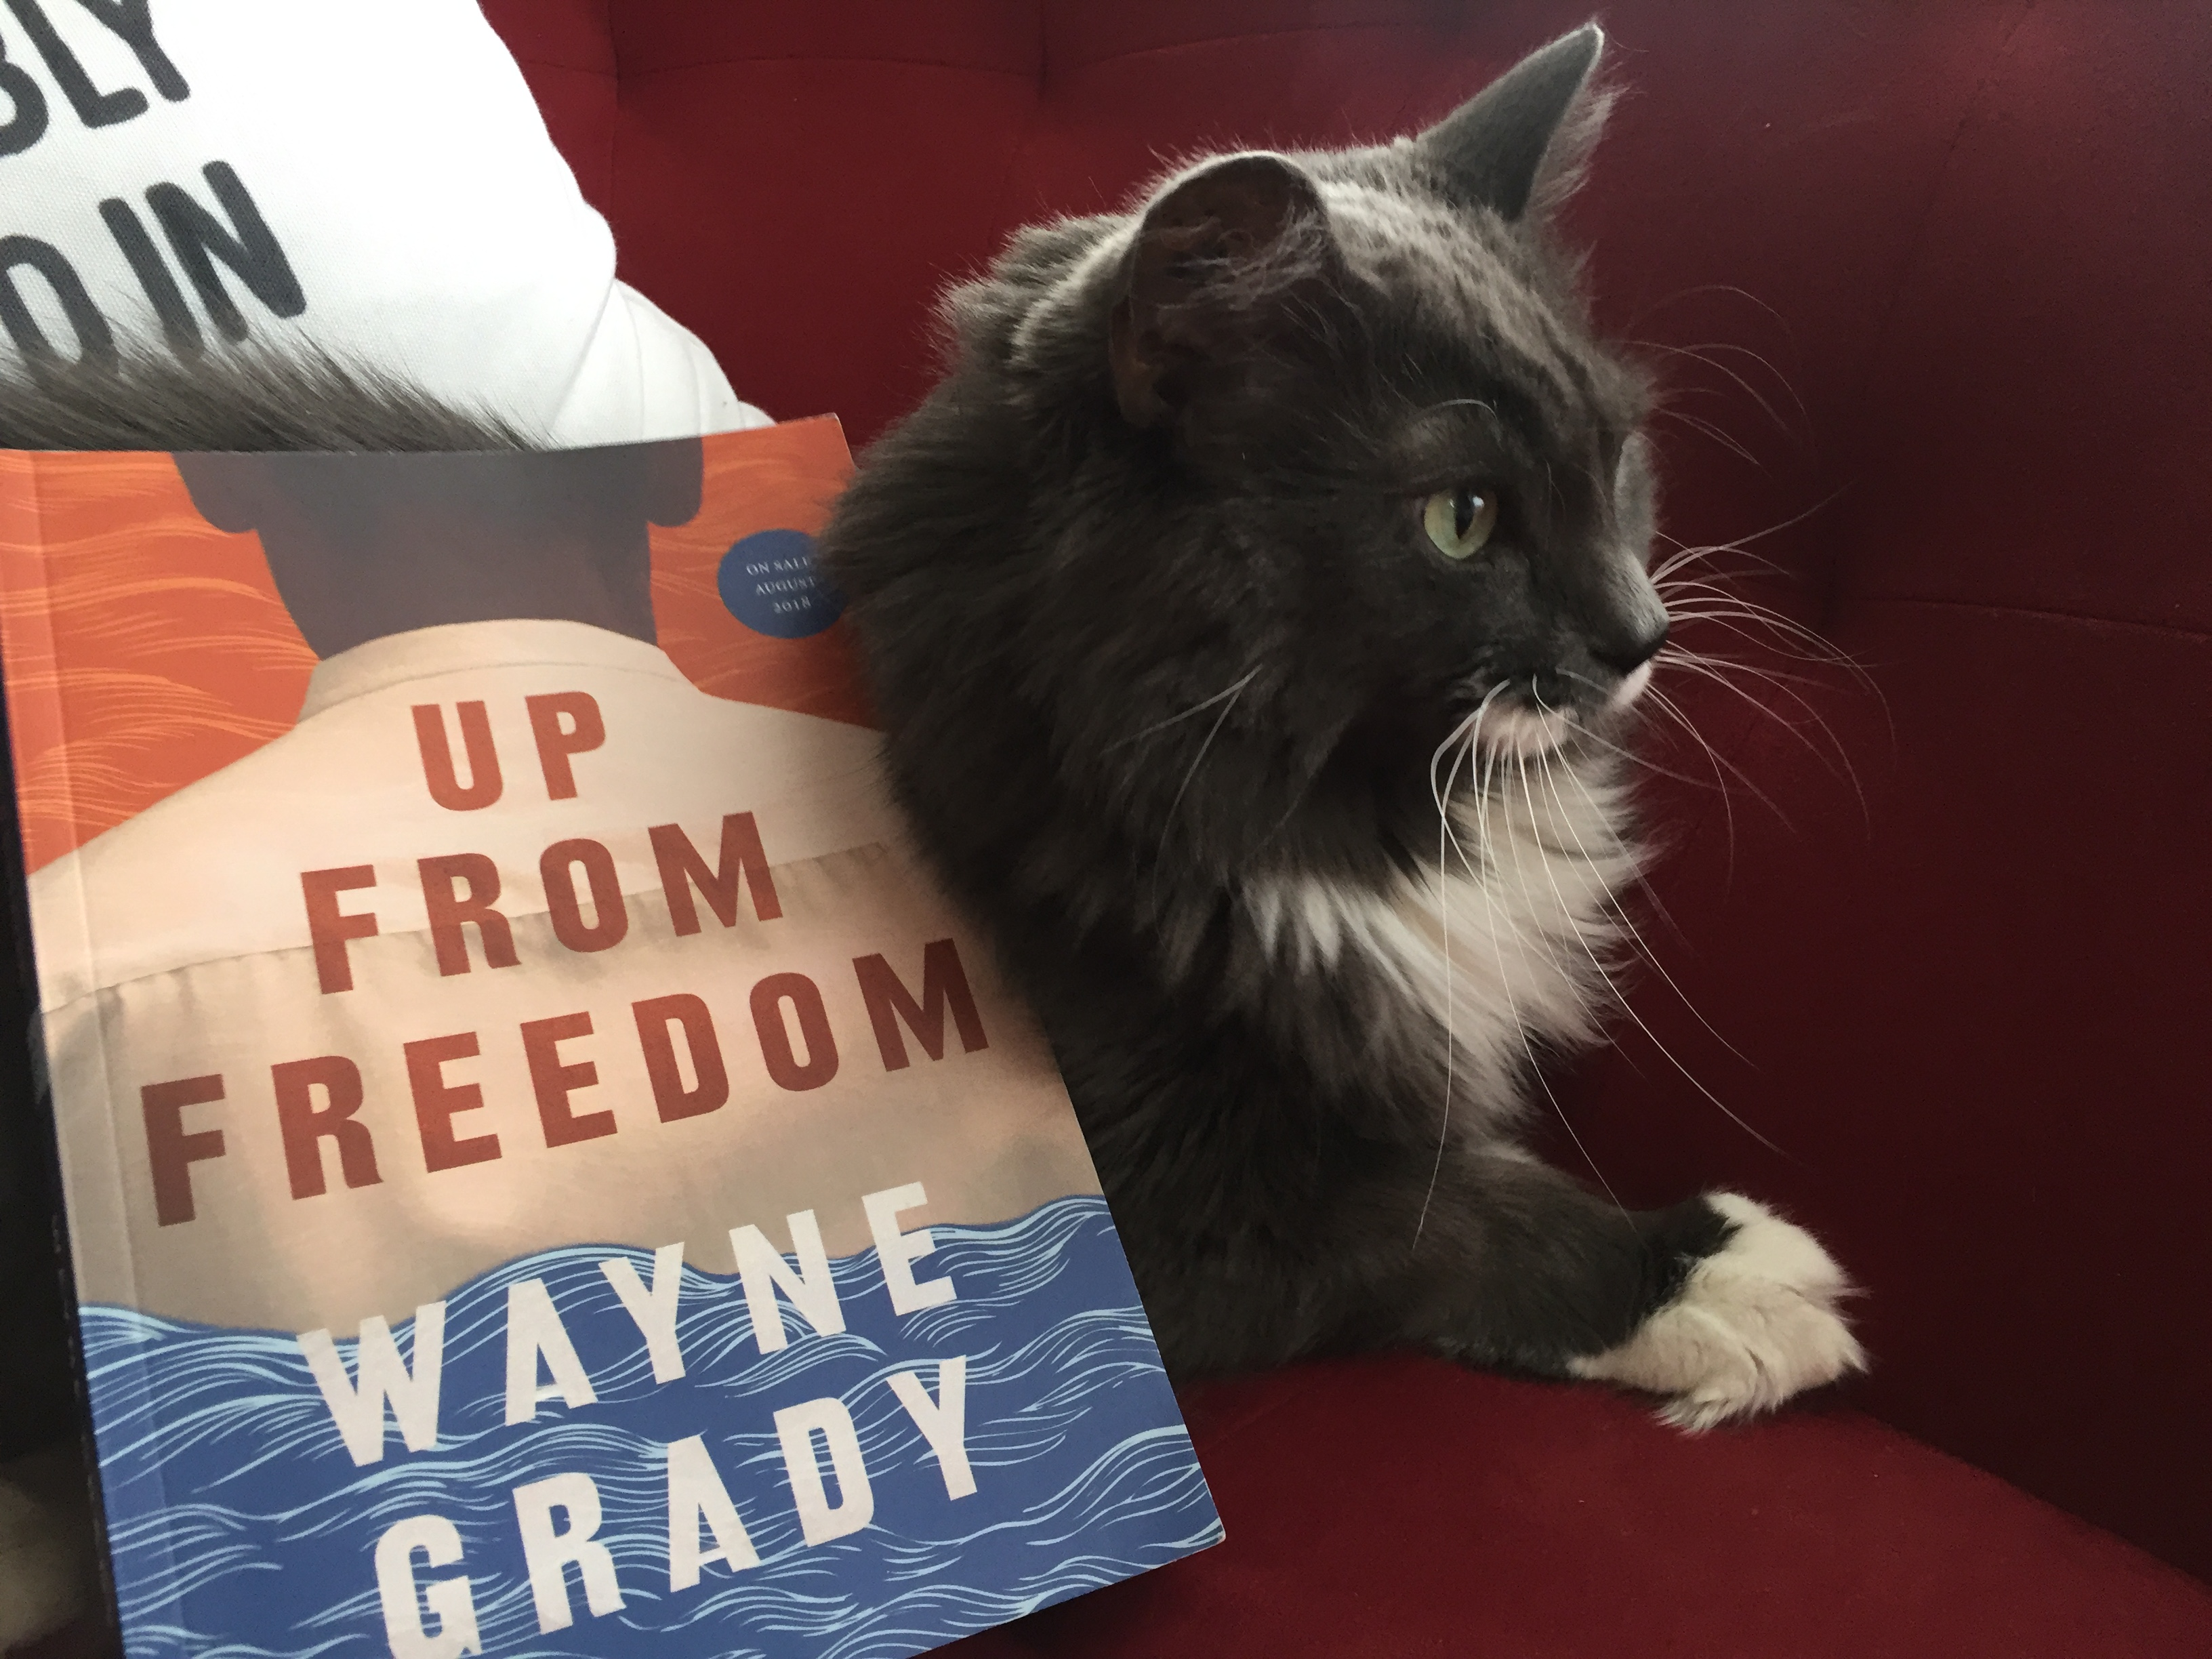 Book Review: Up From Freedom by Wayne Grady